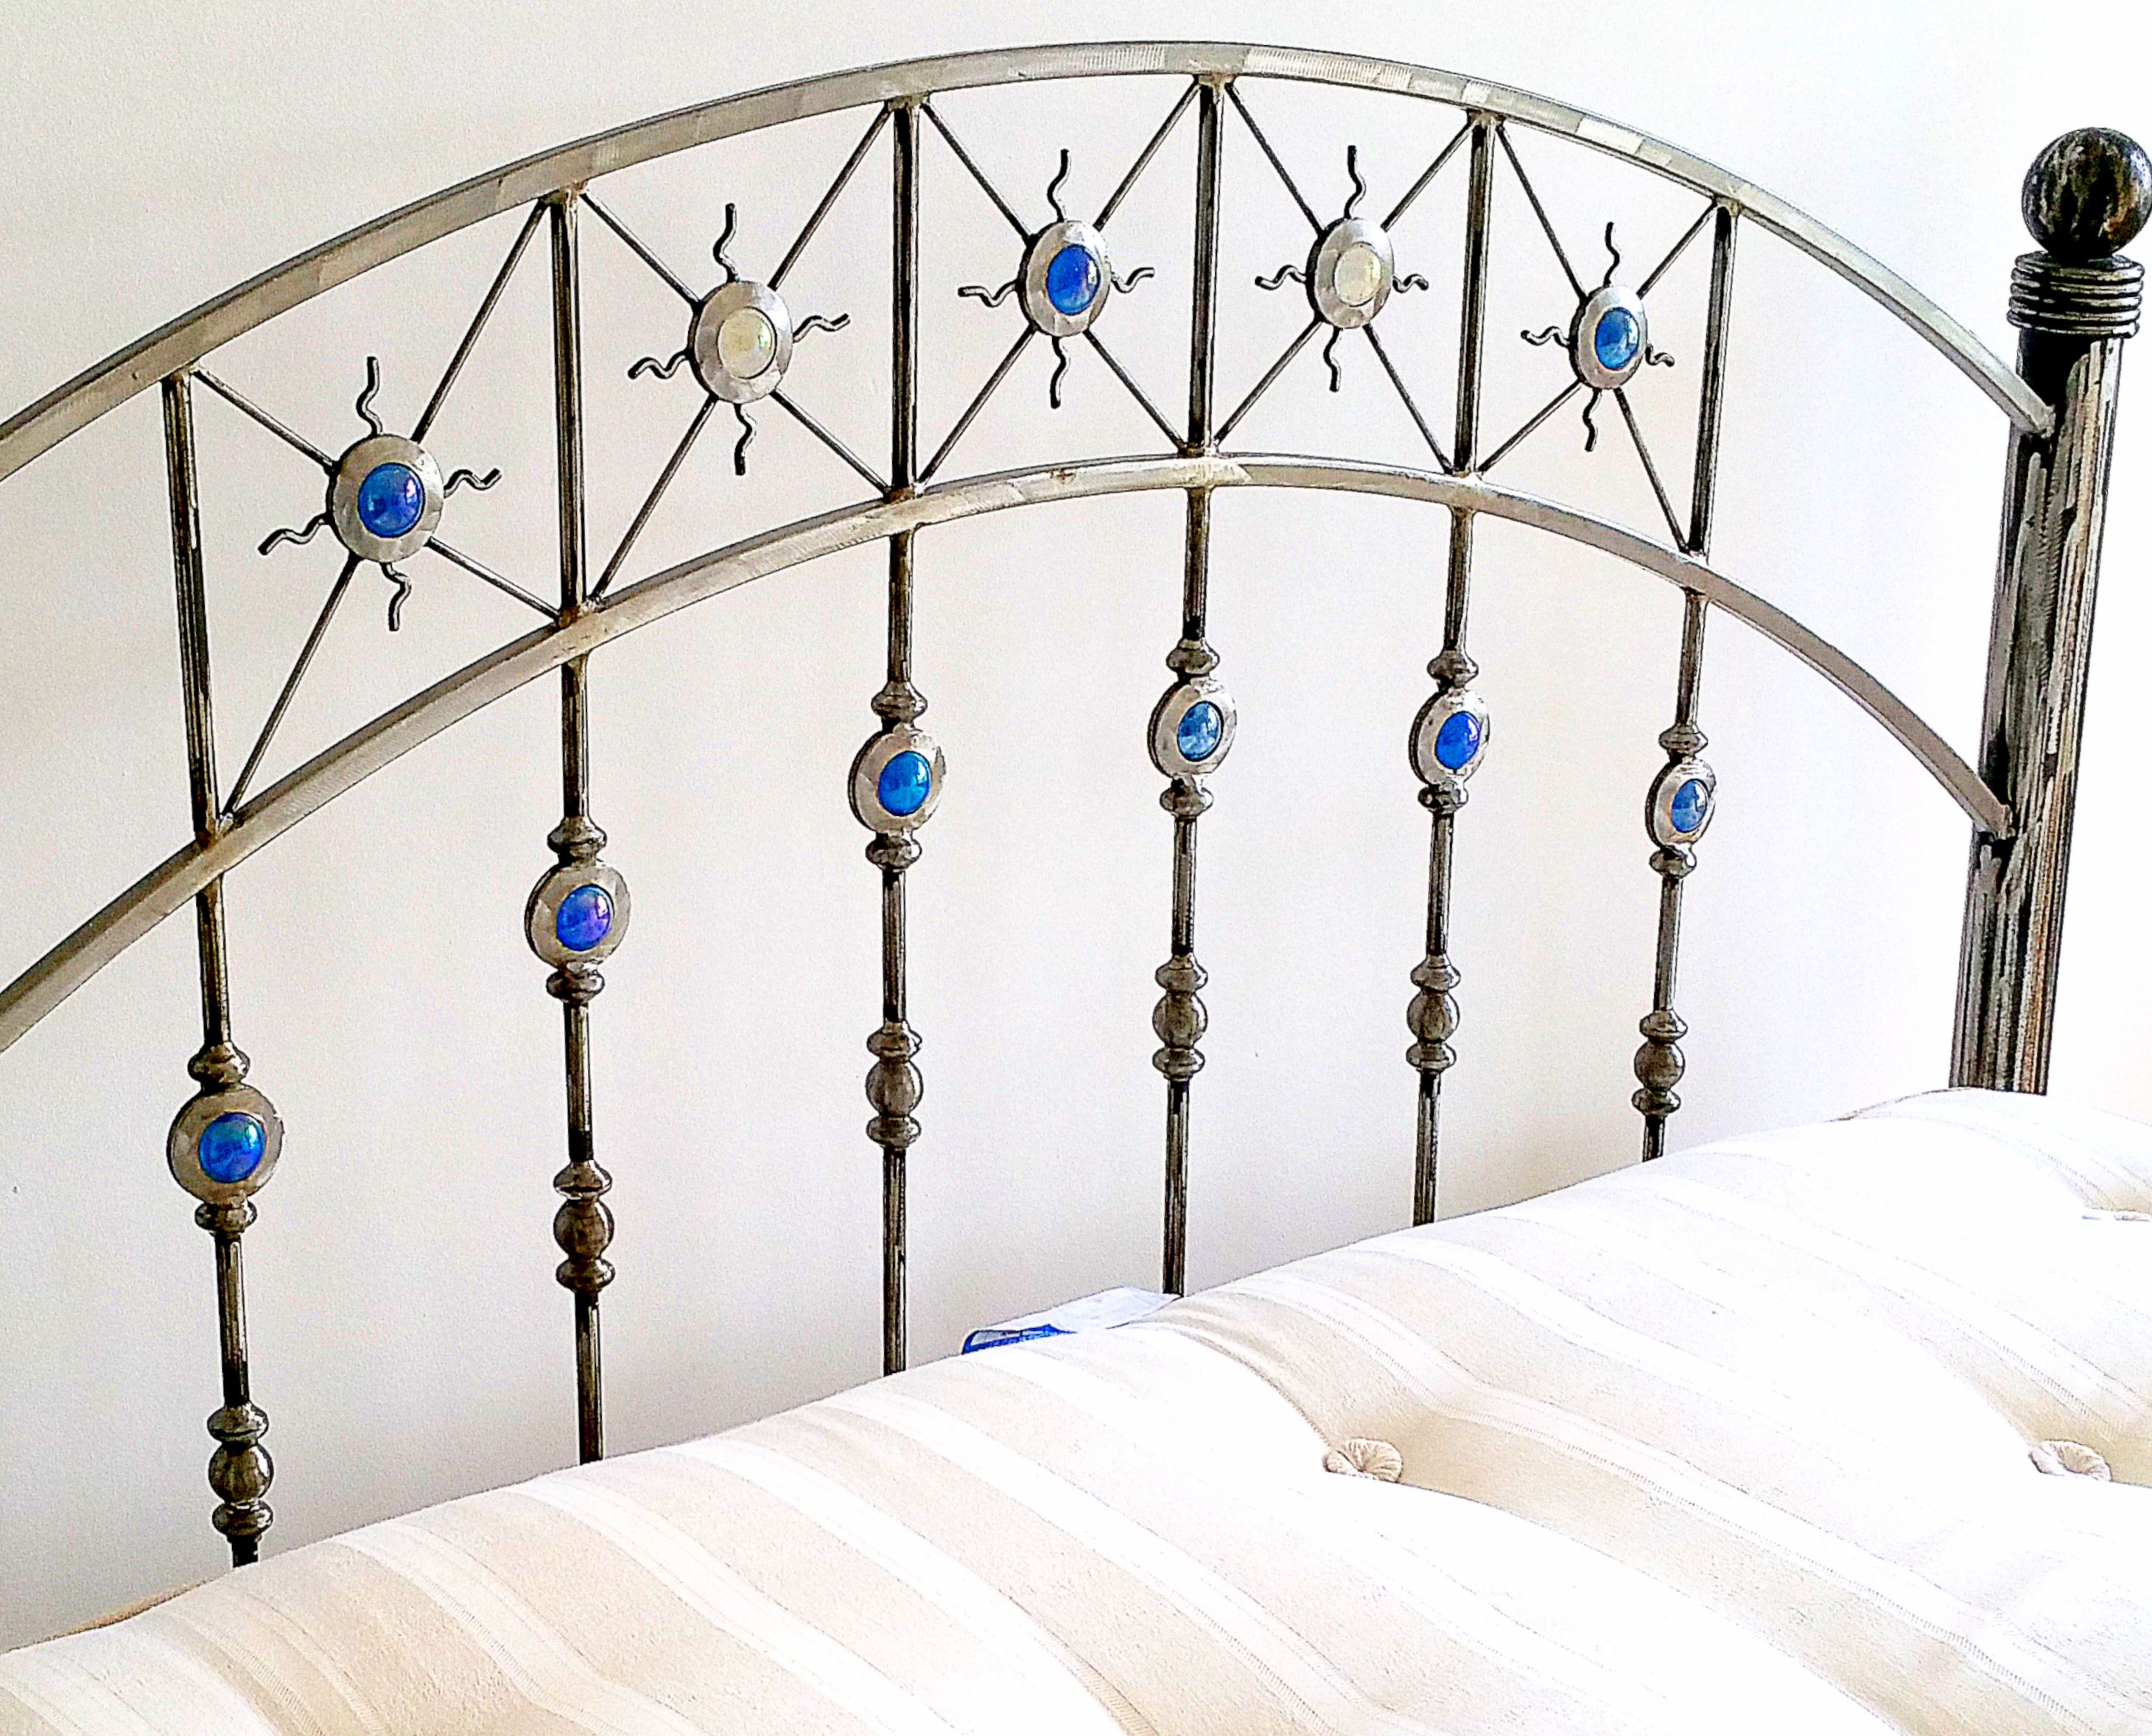 Handmade metal bed ,with  glass balls